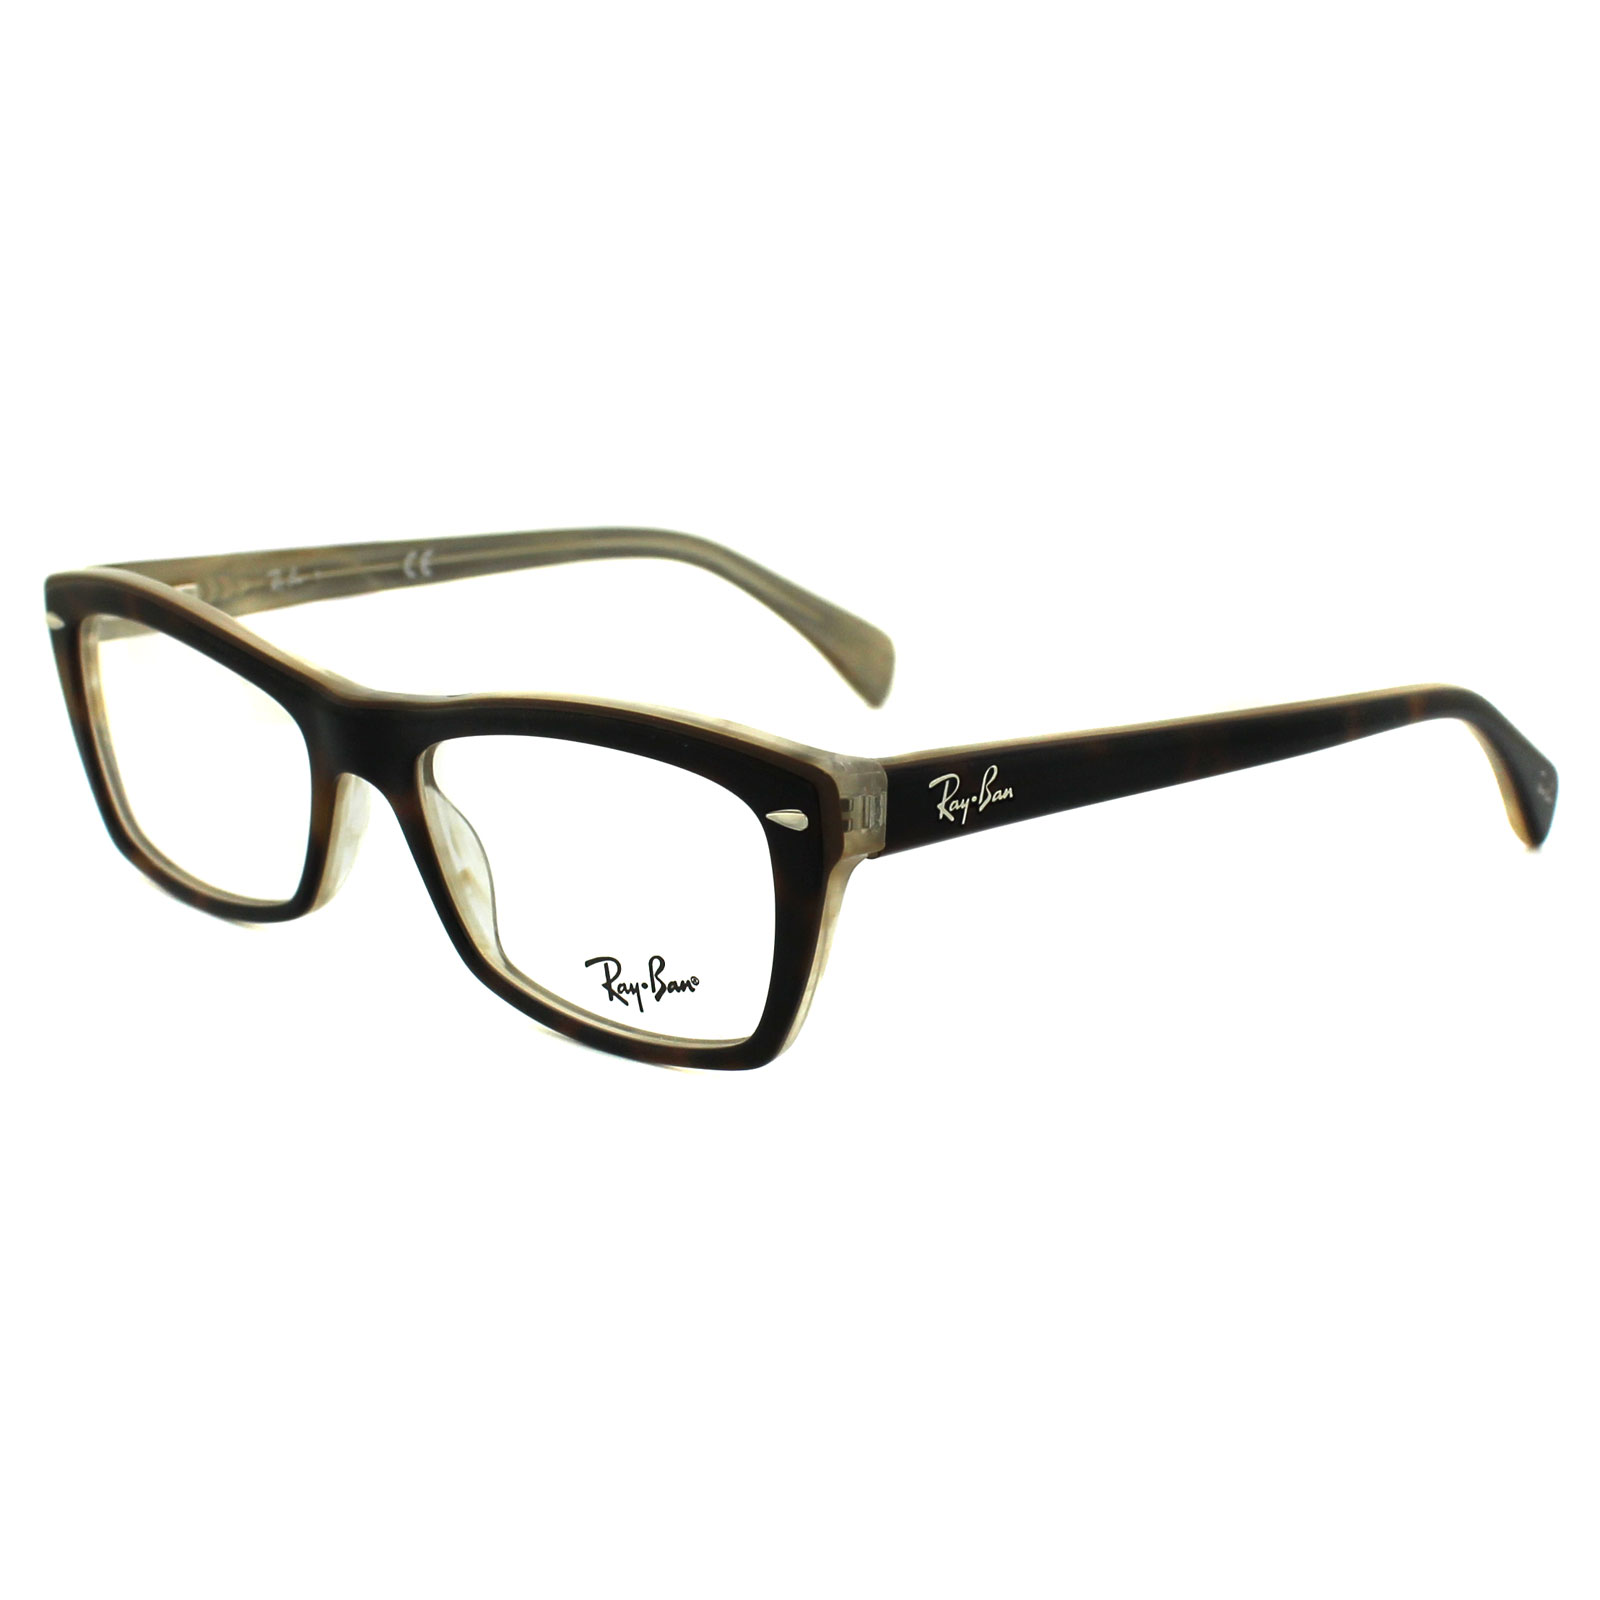 8521a98b9548 Ray Ban Glasses Frames Ebay Uk